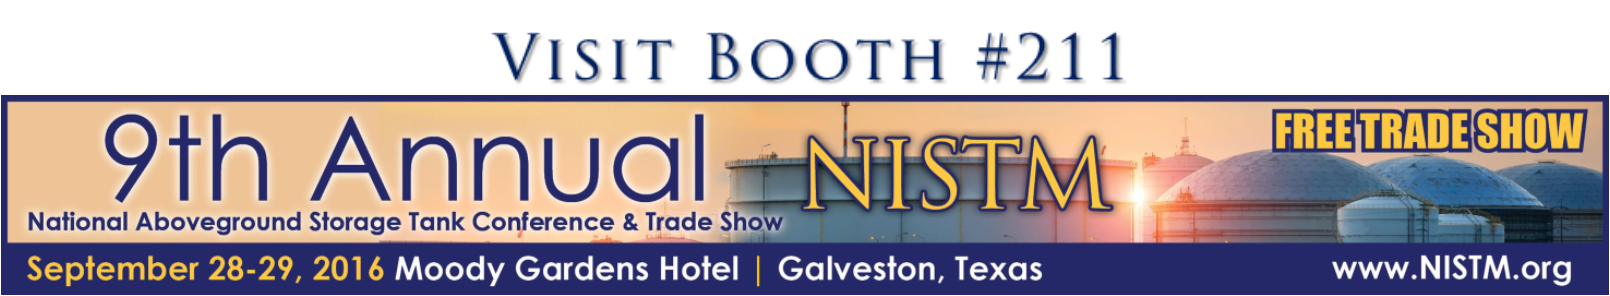 Find us at the NISTM Booth 211